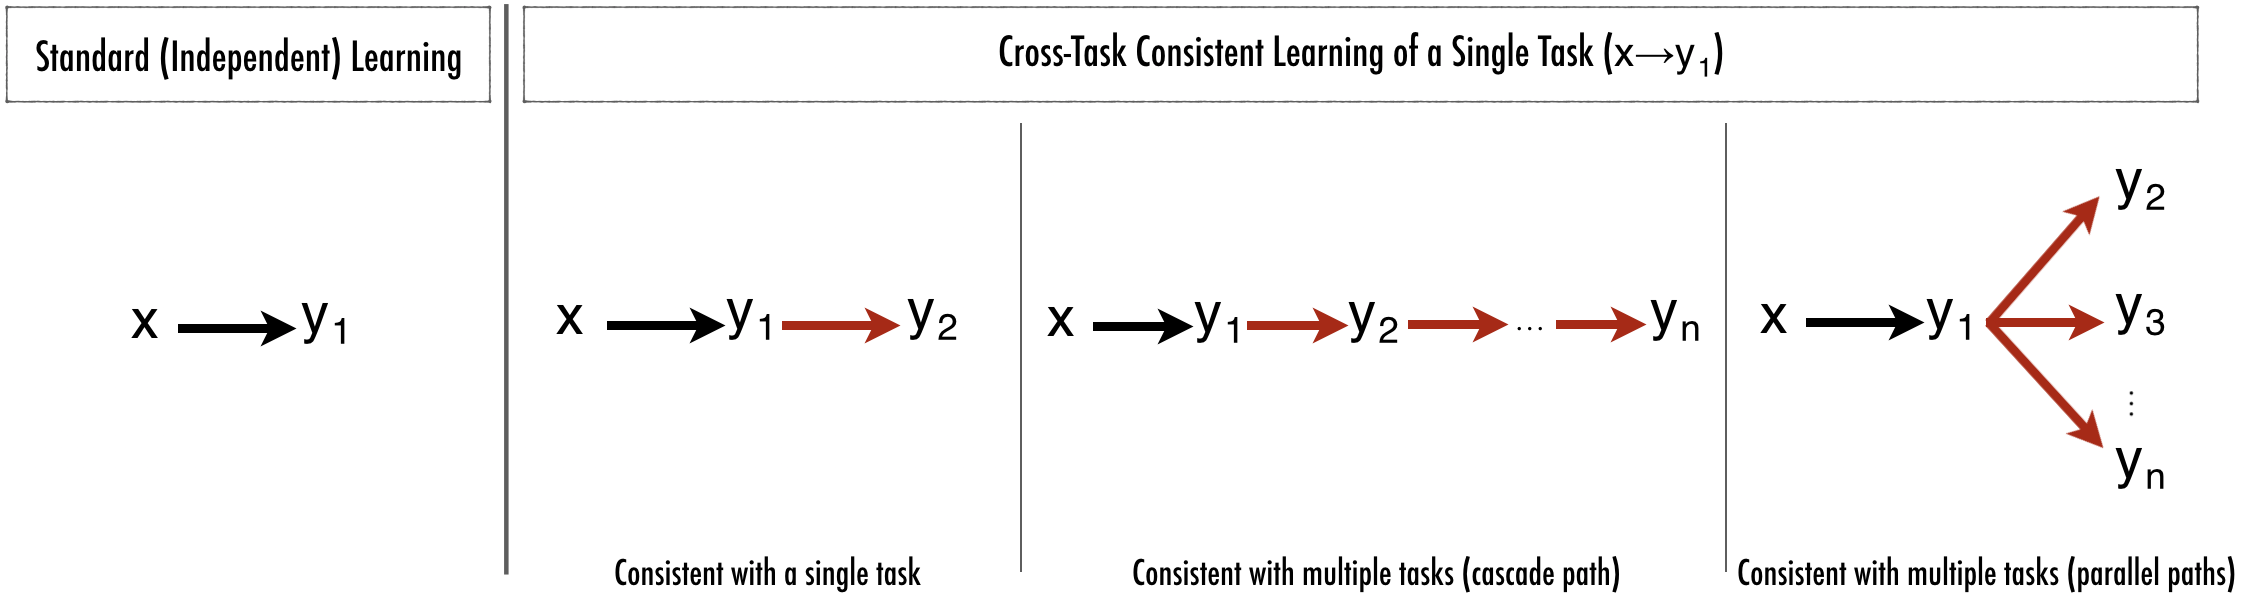 How to use cross-task consistency for single-task learning.